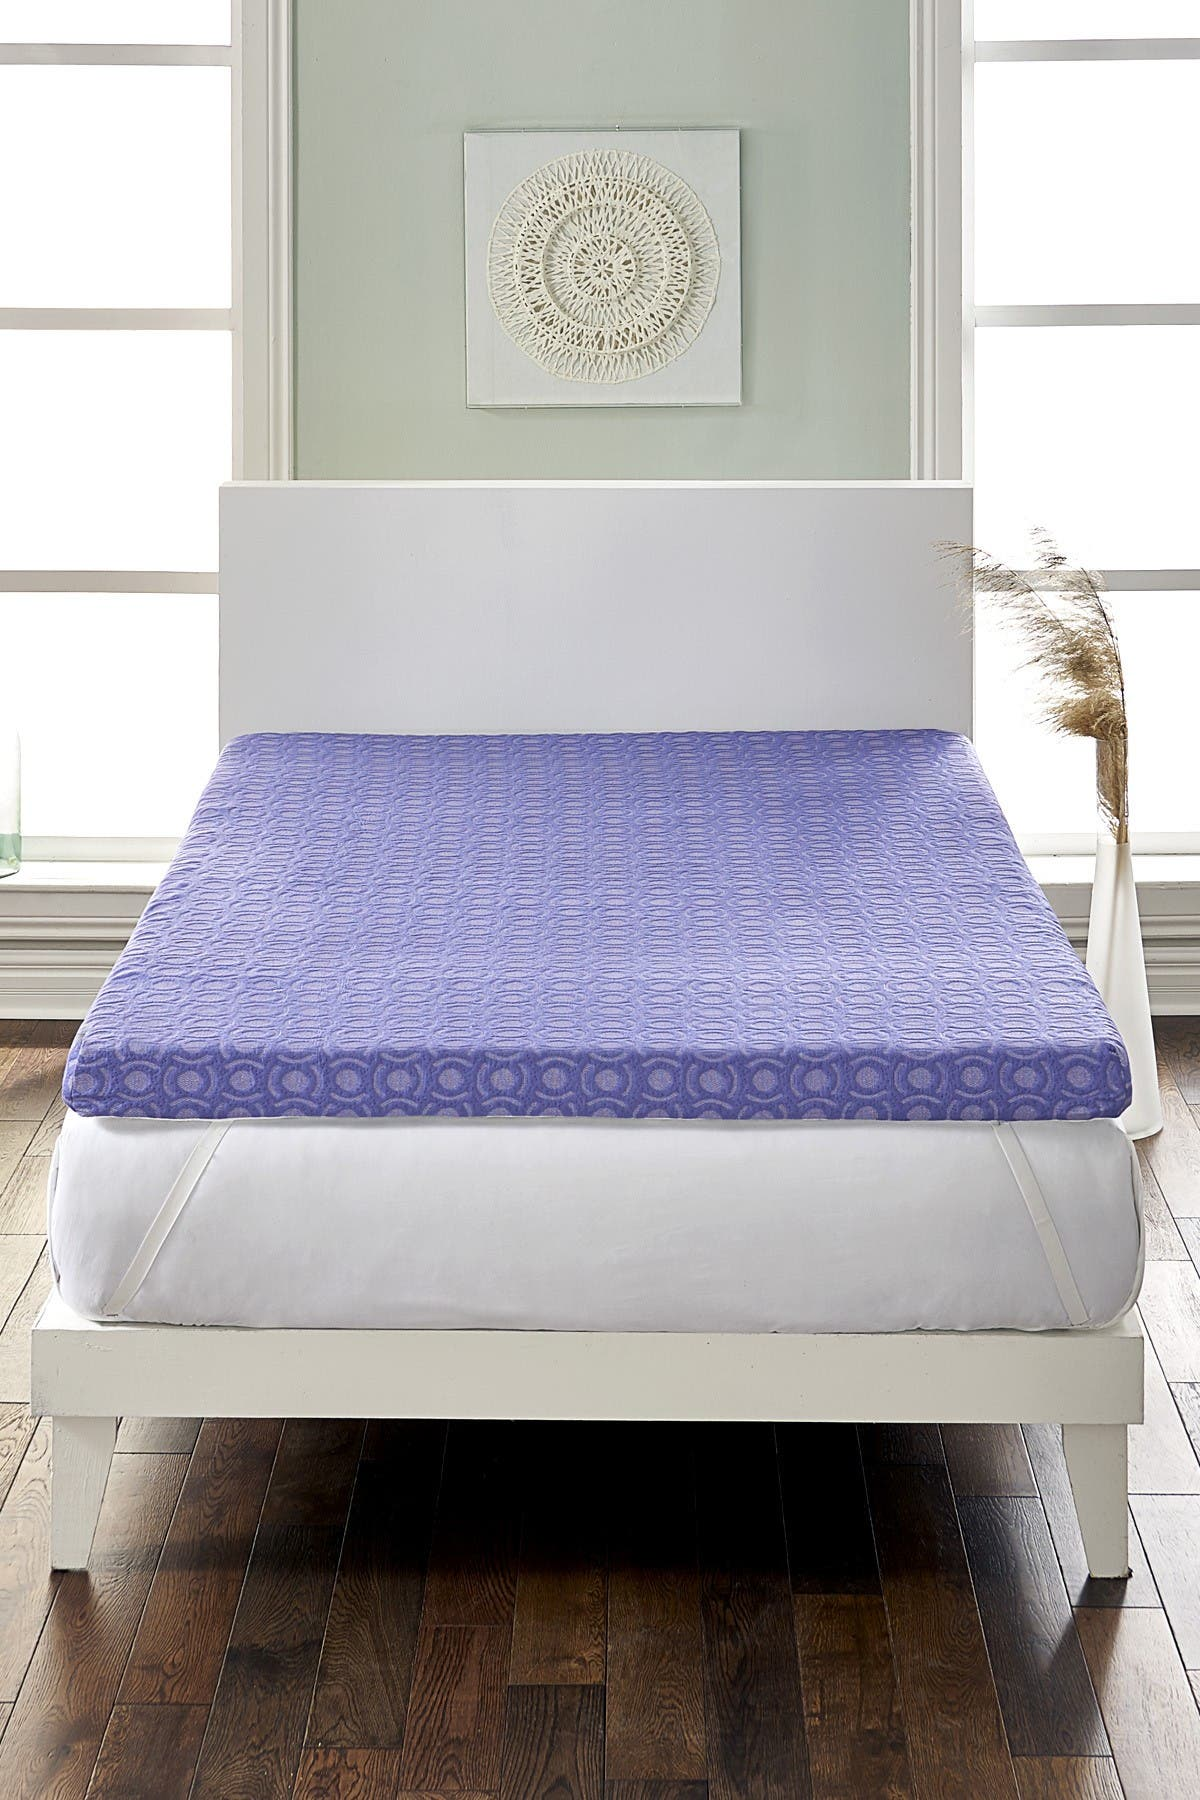 Rio Home Loftworks 4 Supreme Memory Foam Mattress Topper With Medium Firm Support Full Nordstrom Rack